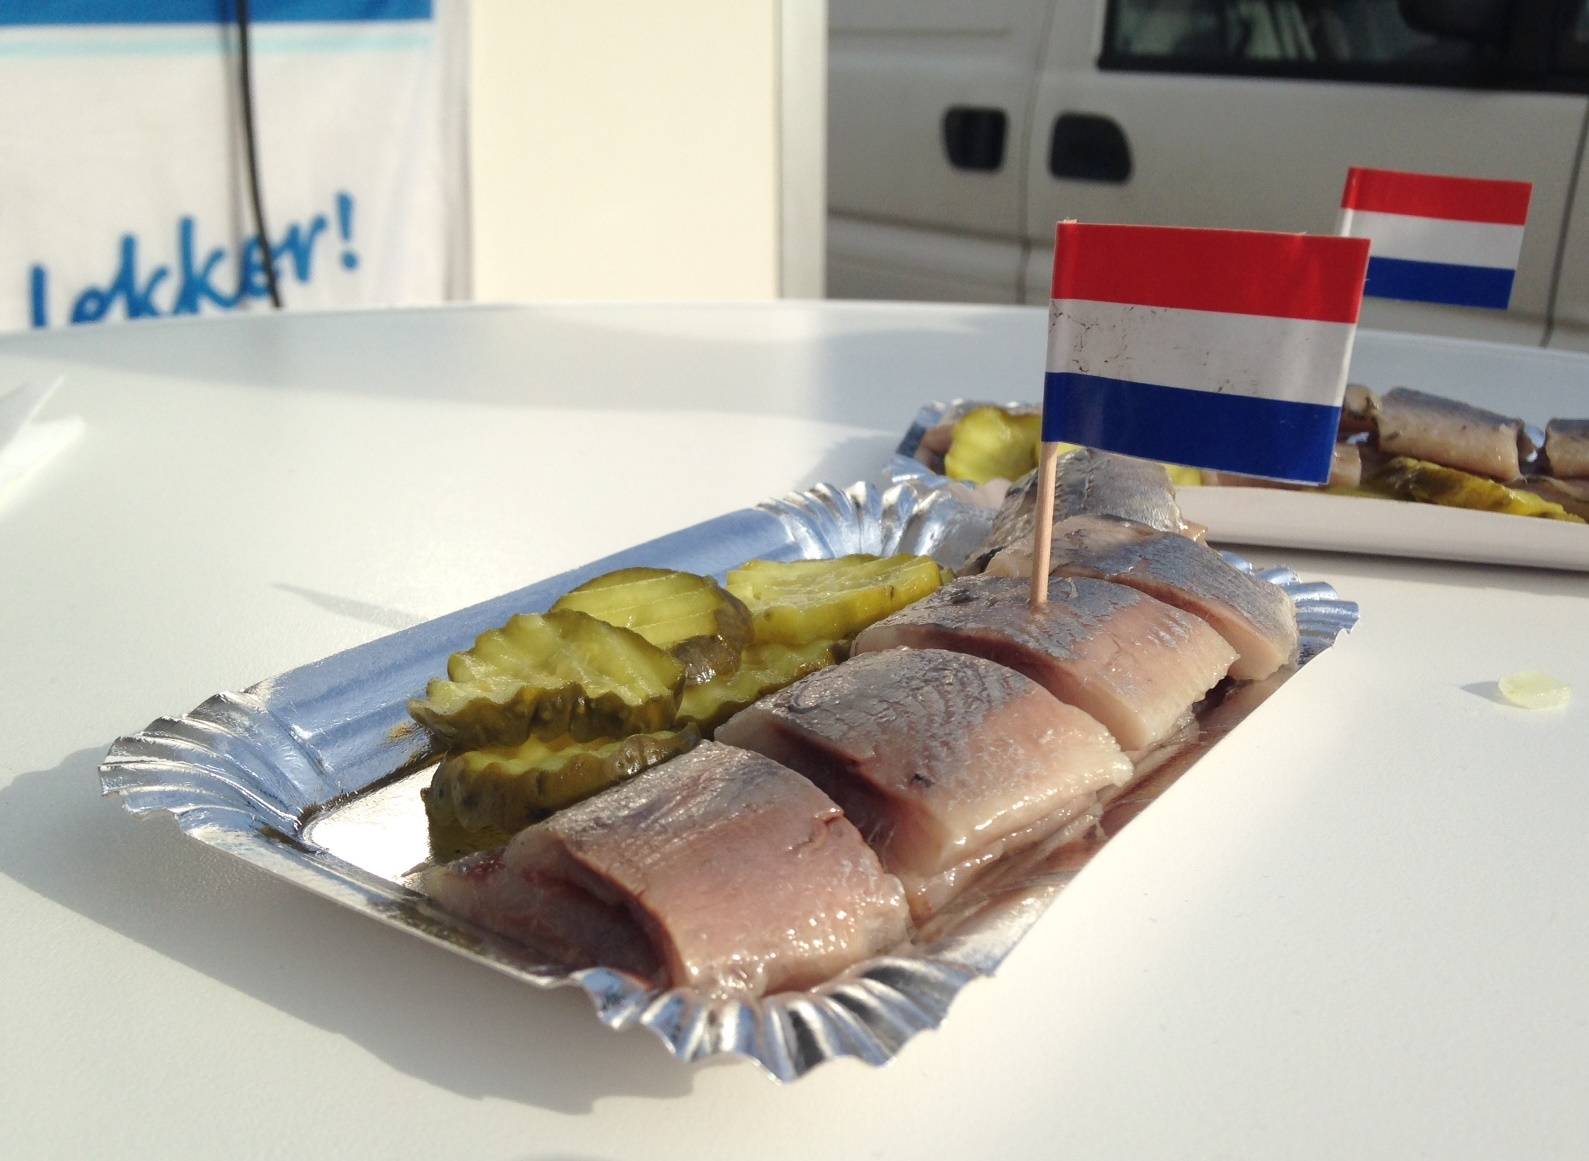 Vlaggetjesdag, herring festival in the Netherlands